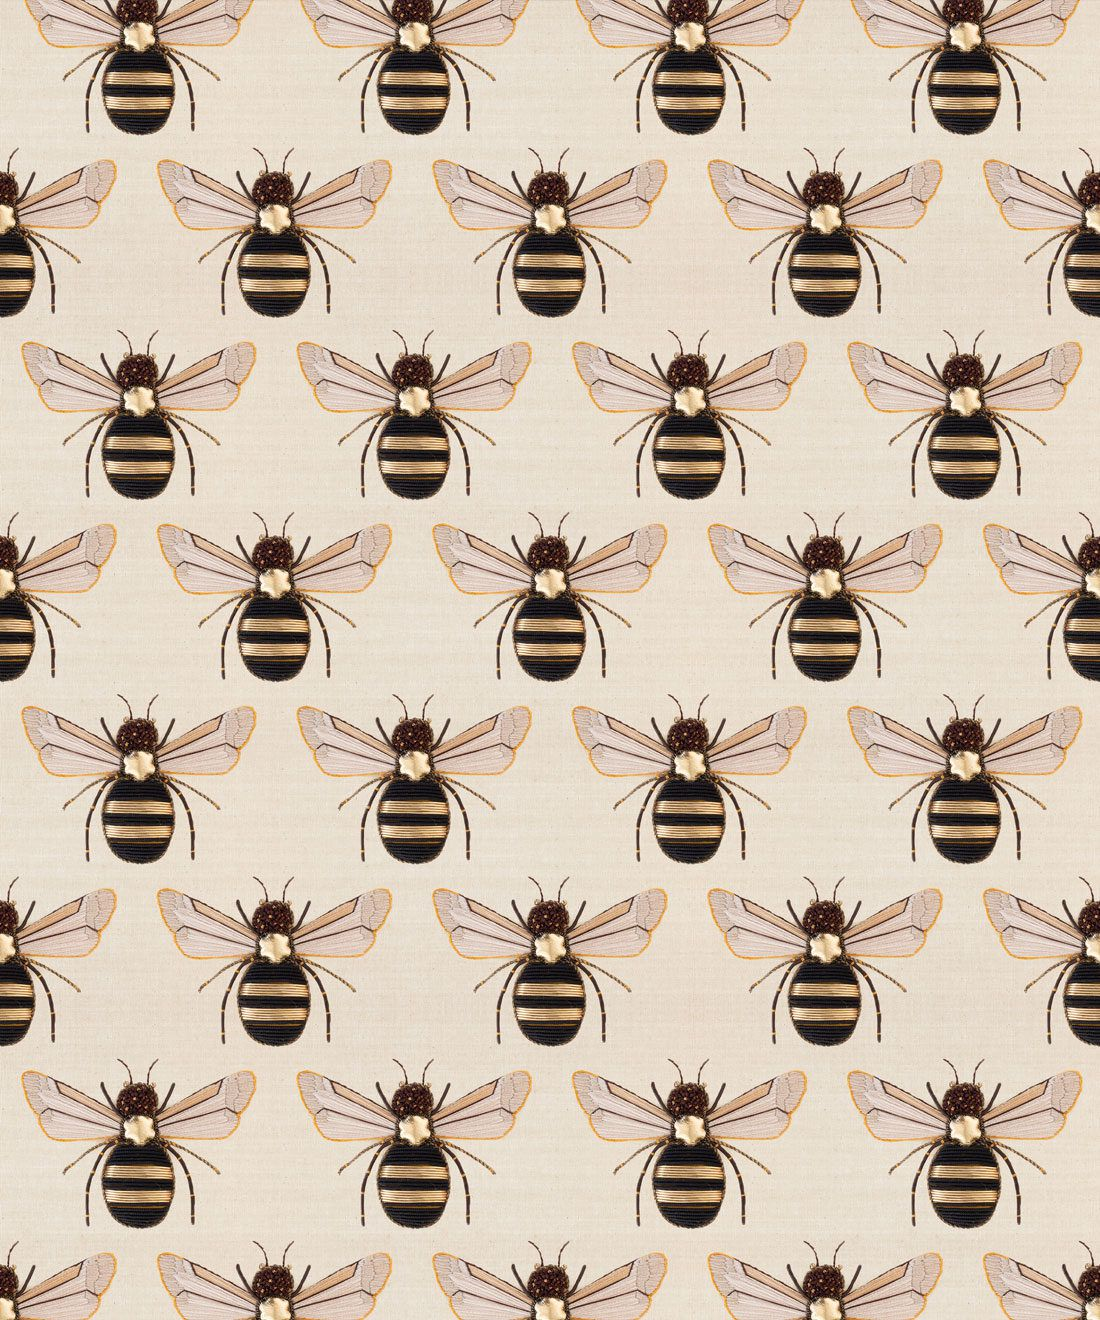 Golden Bee Embroidery, A wallpaper featuring bees